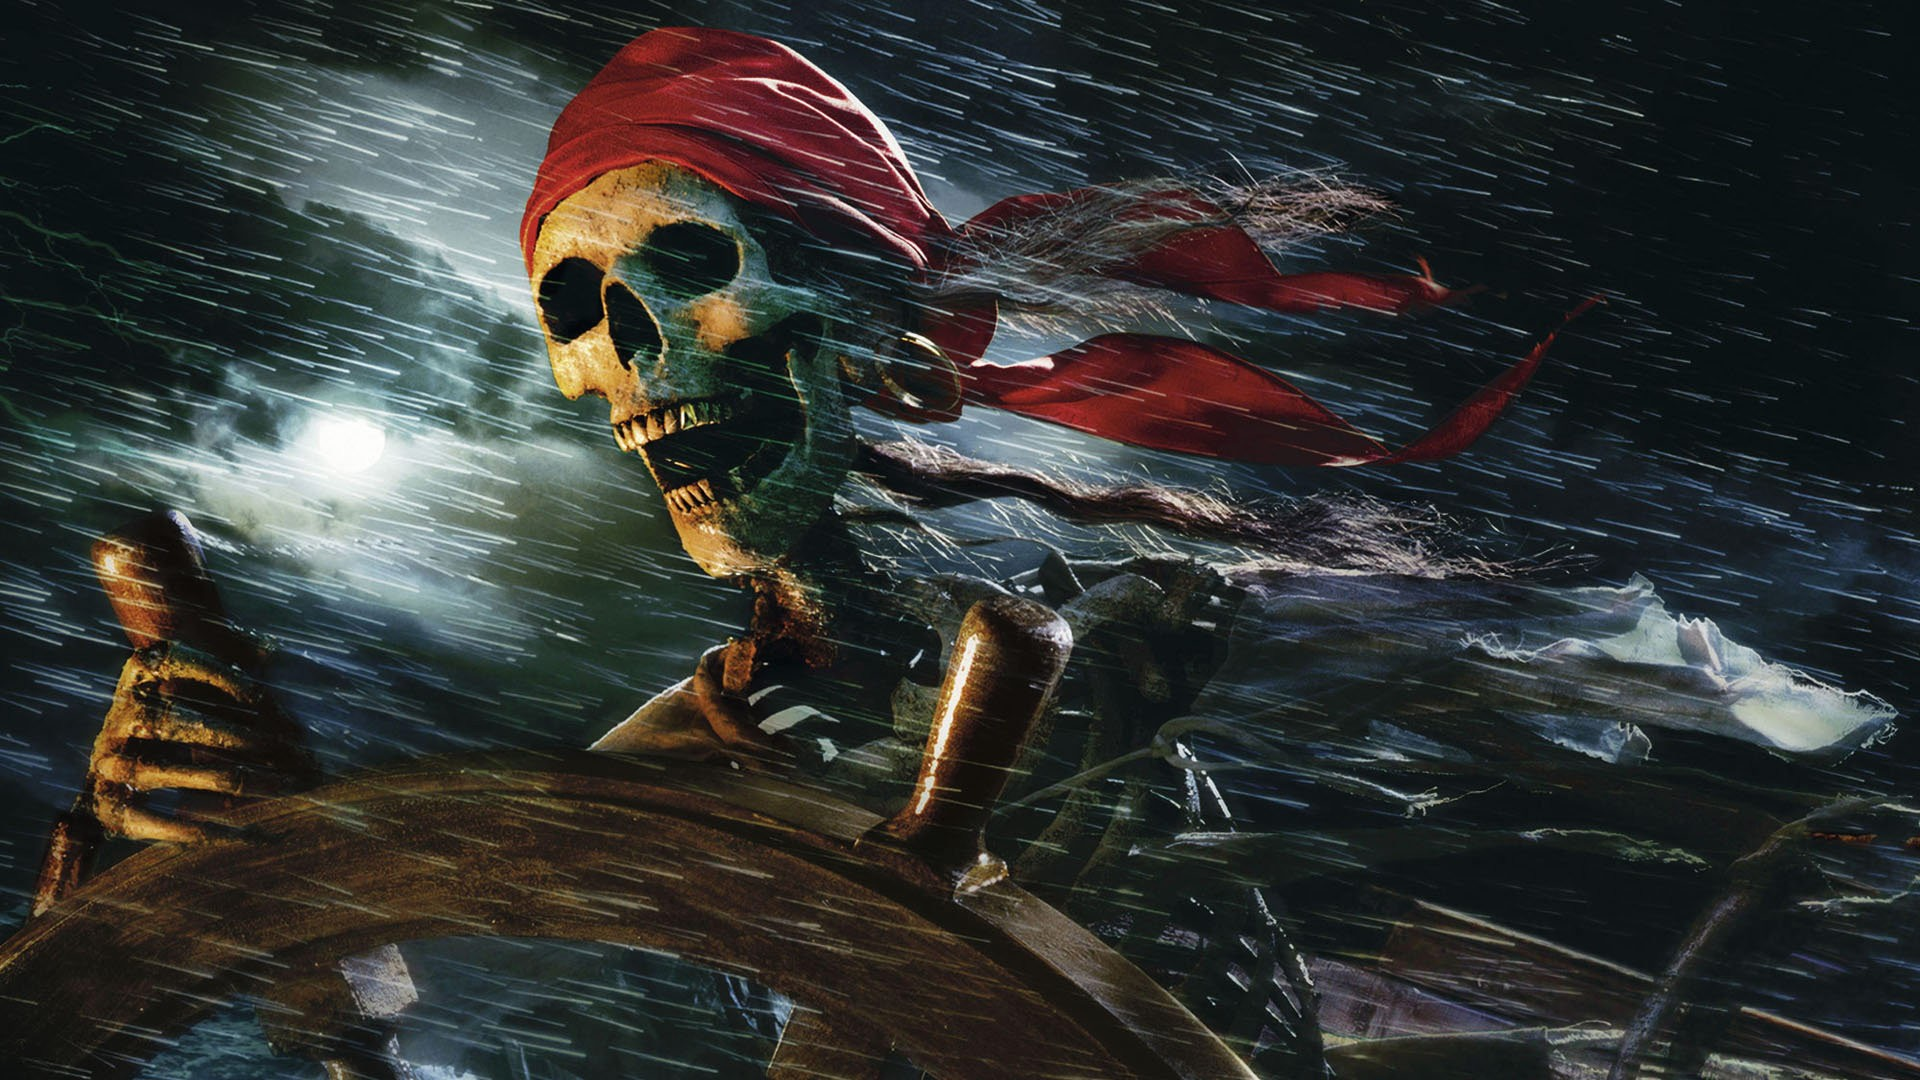 Pirates Of The Caribean Wallpaper: Pirates Of The Caribbean 5: Dead Men Tell No Tales HD